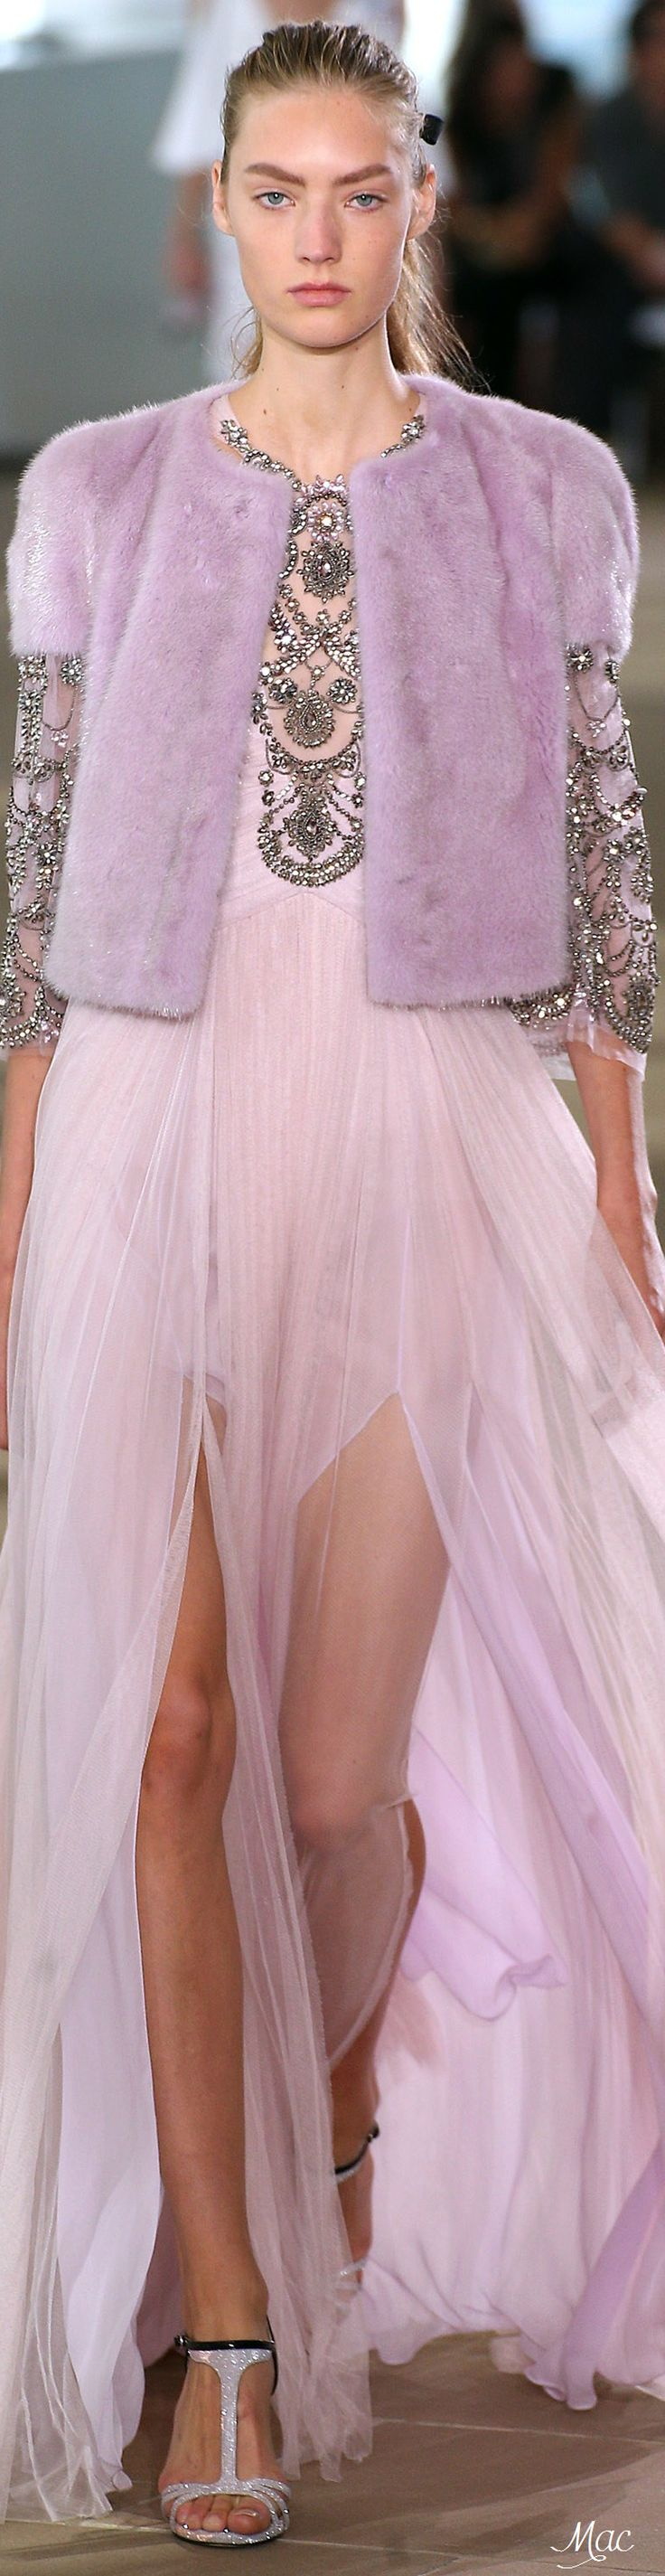 Spring 2017 Ready-to-Wear Monique Lhuillier